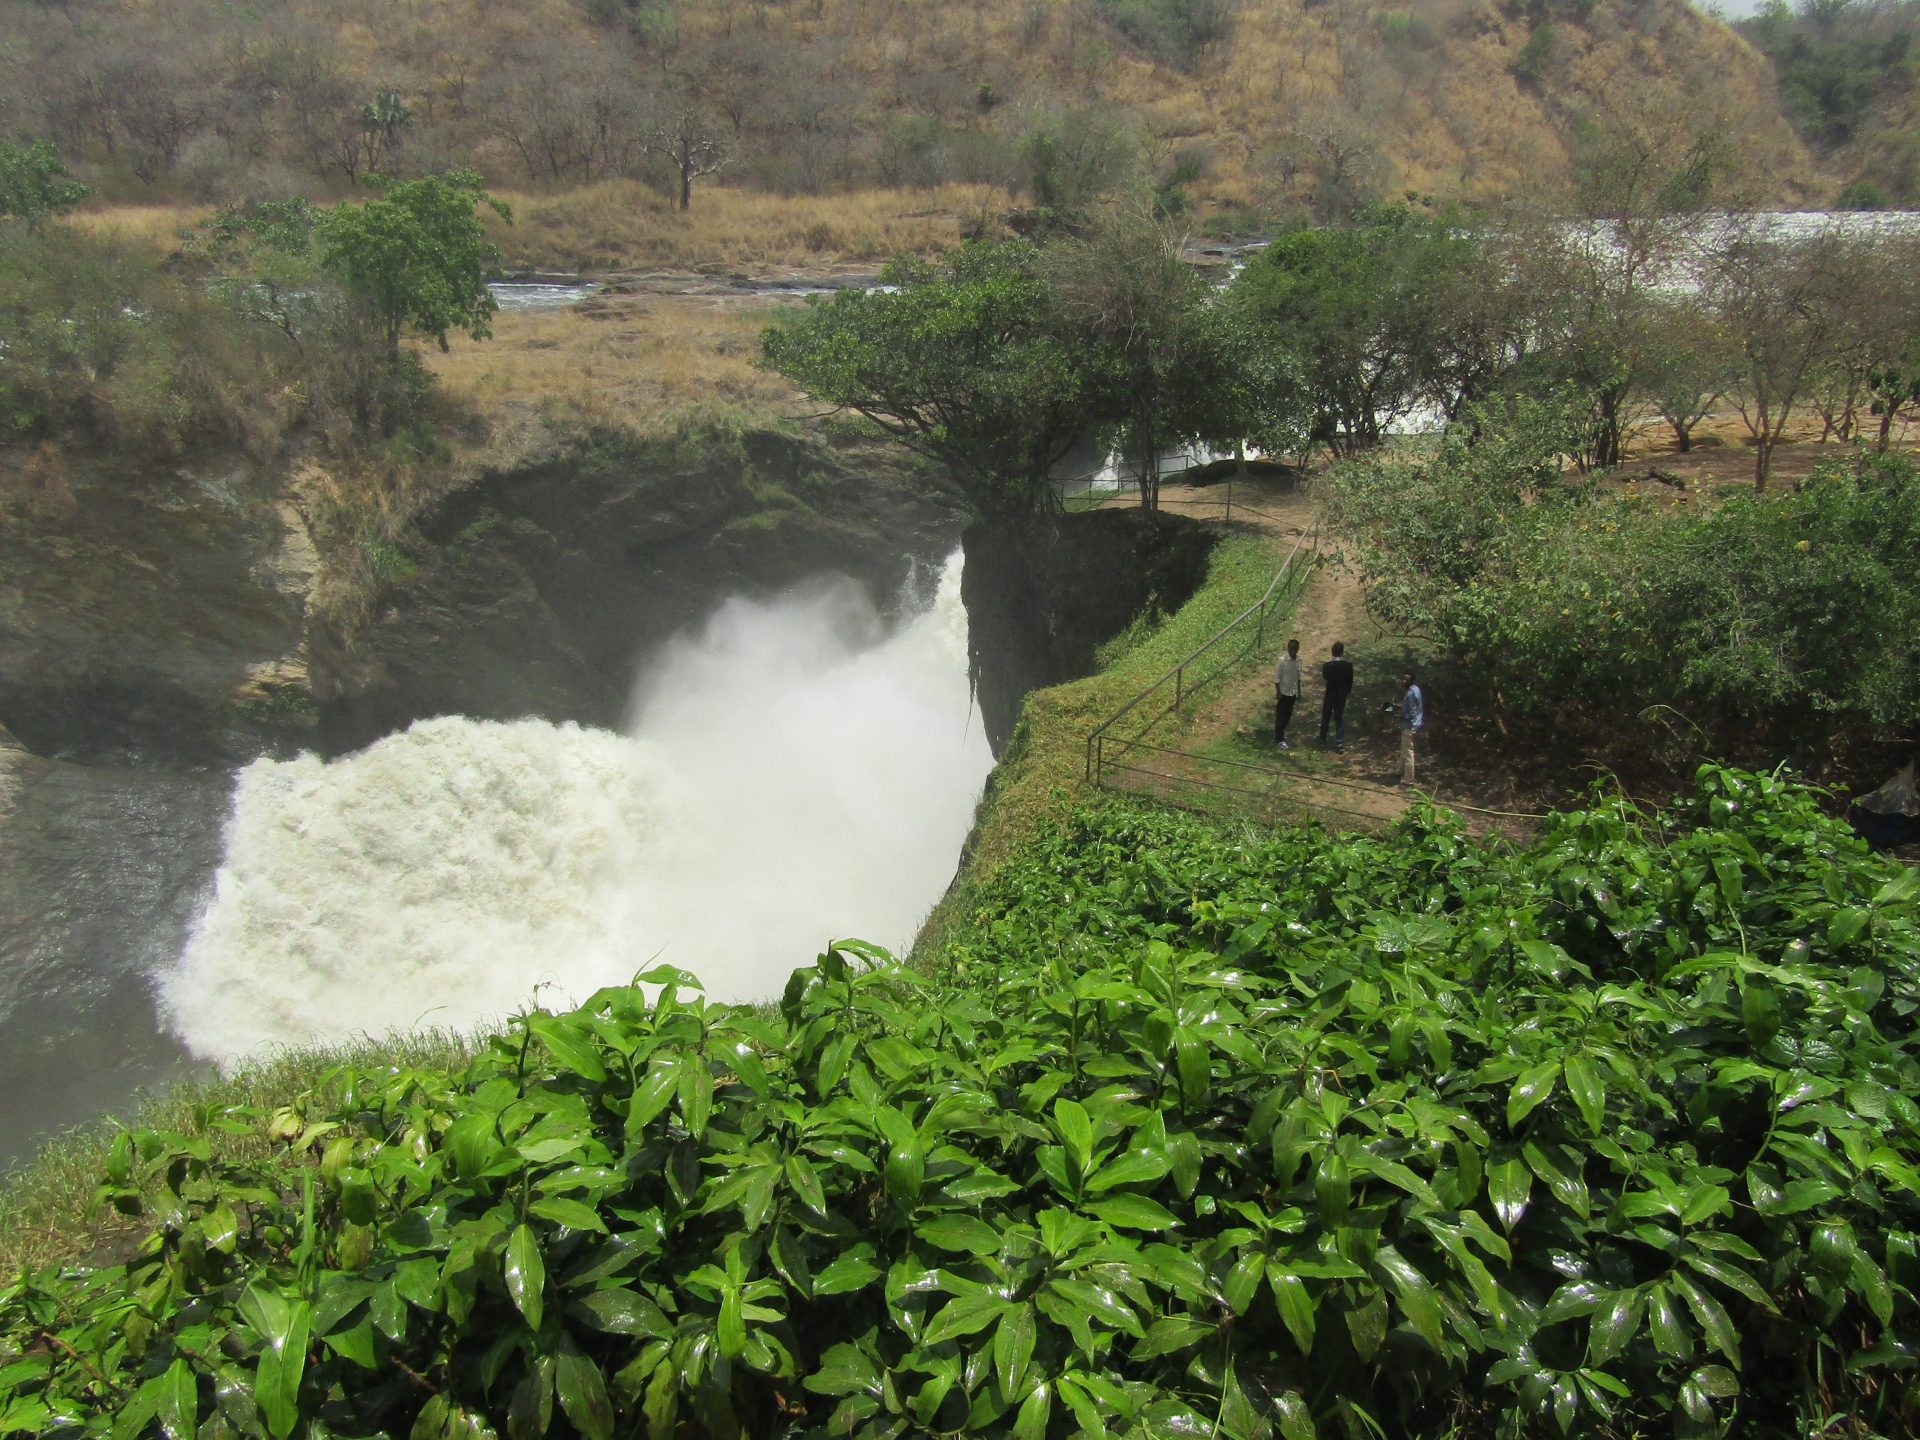 The Murchison Falls